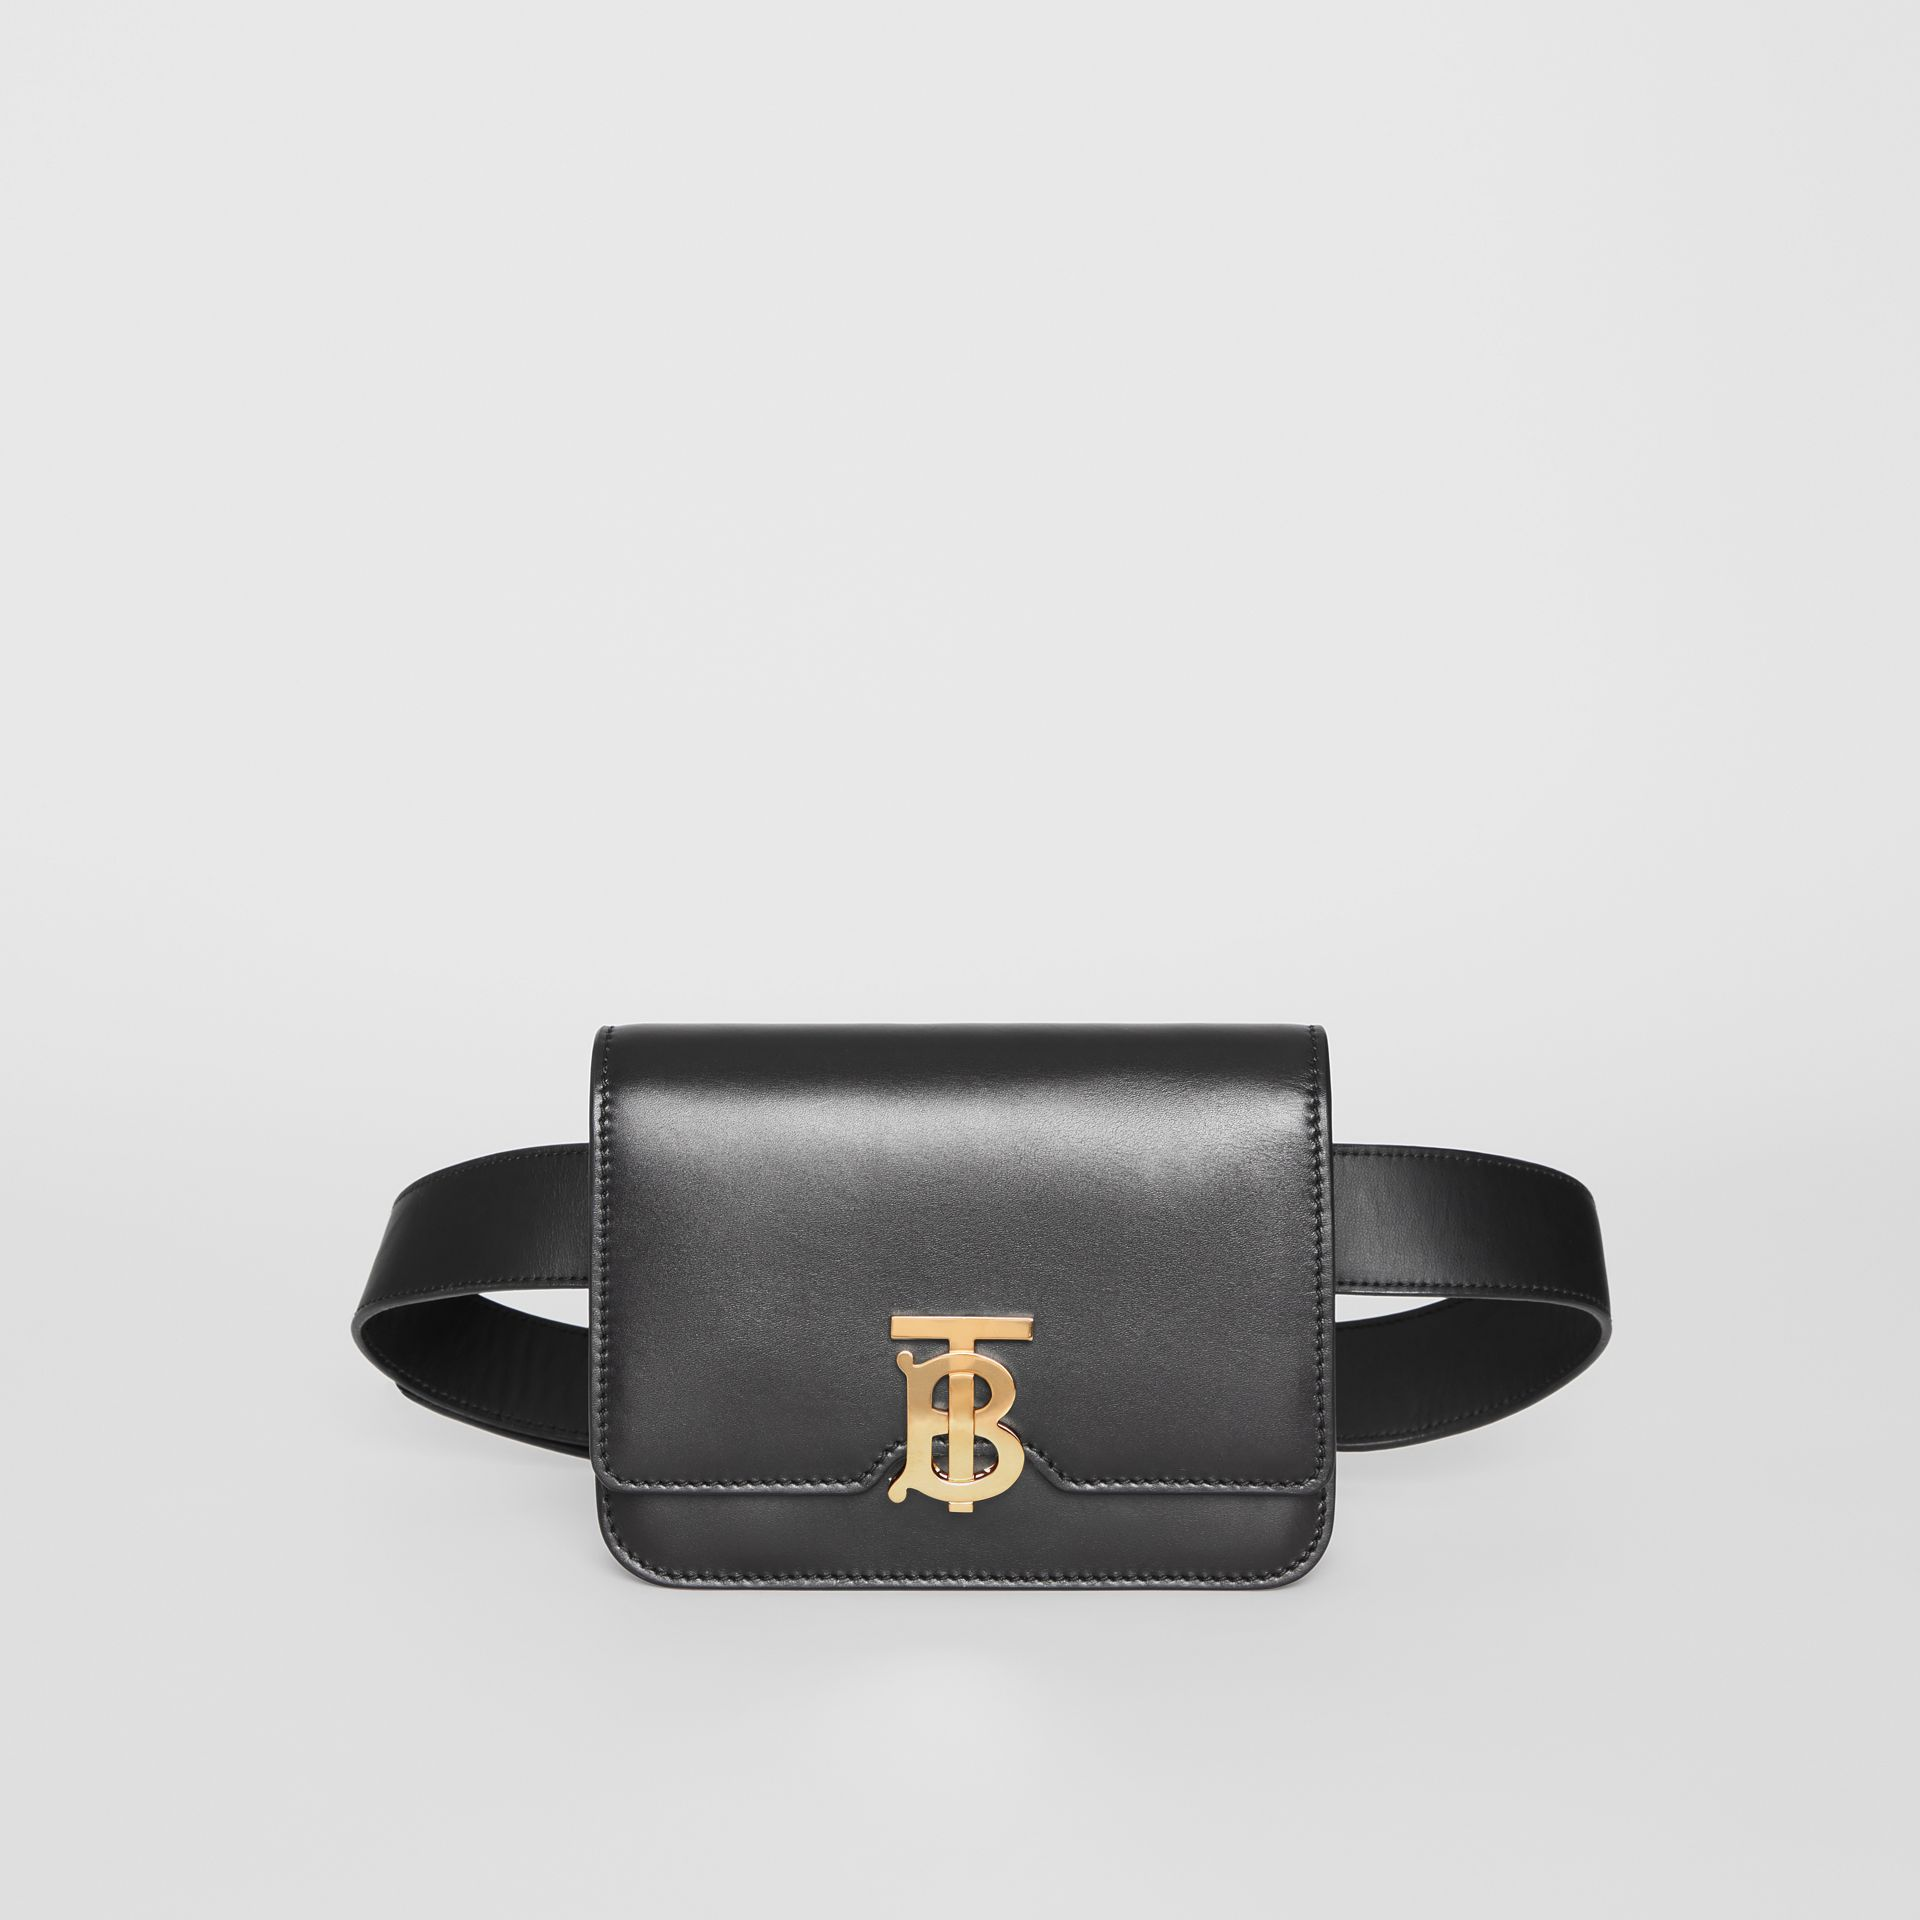 Belted Leather TB Bag in Black - Women | Burberry - gallery image 0